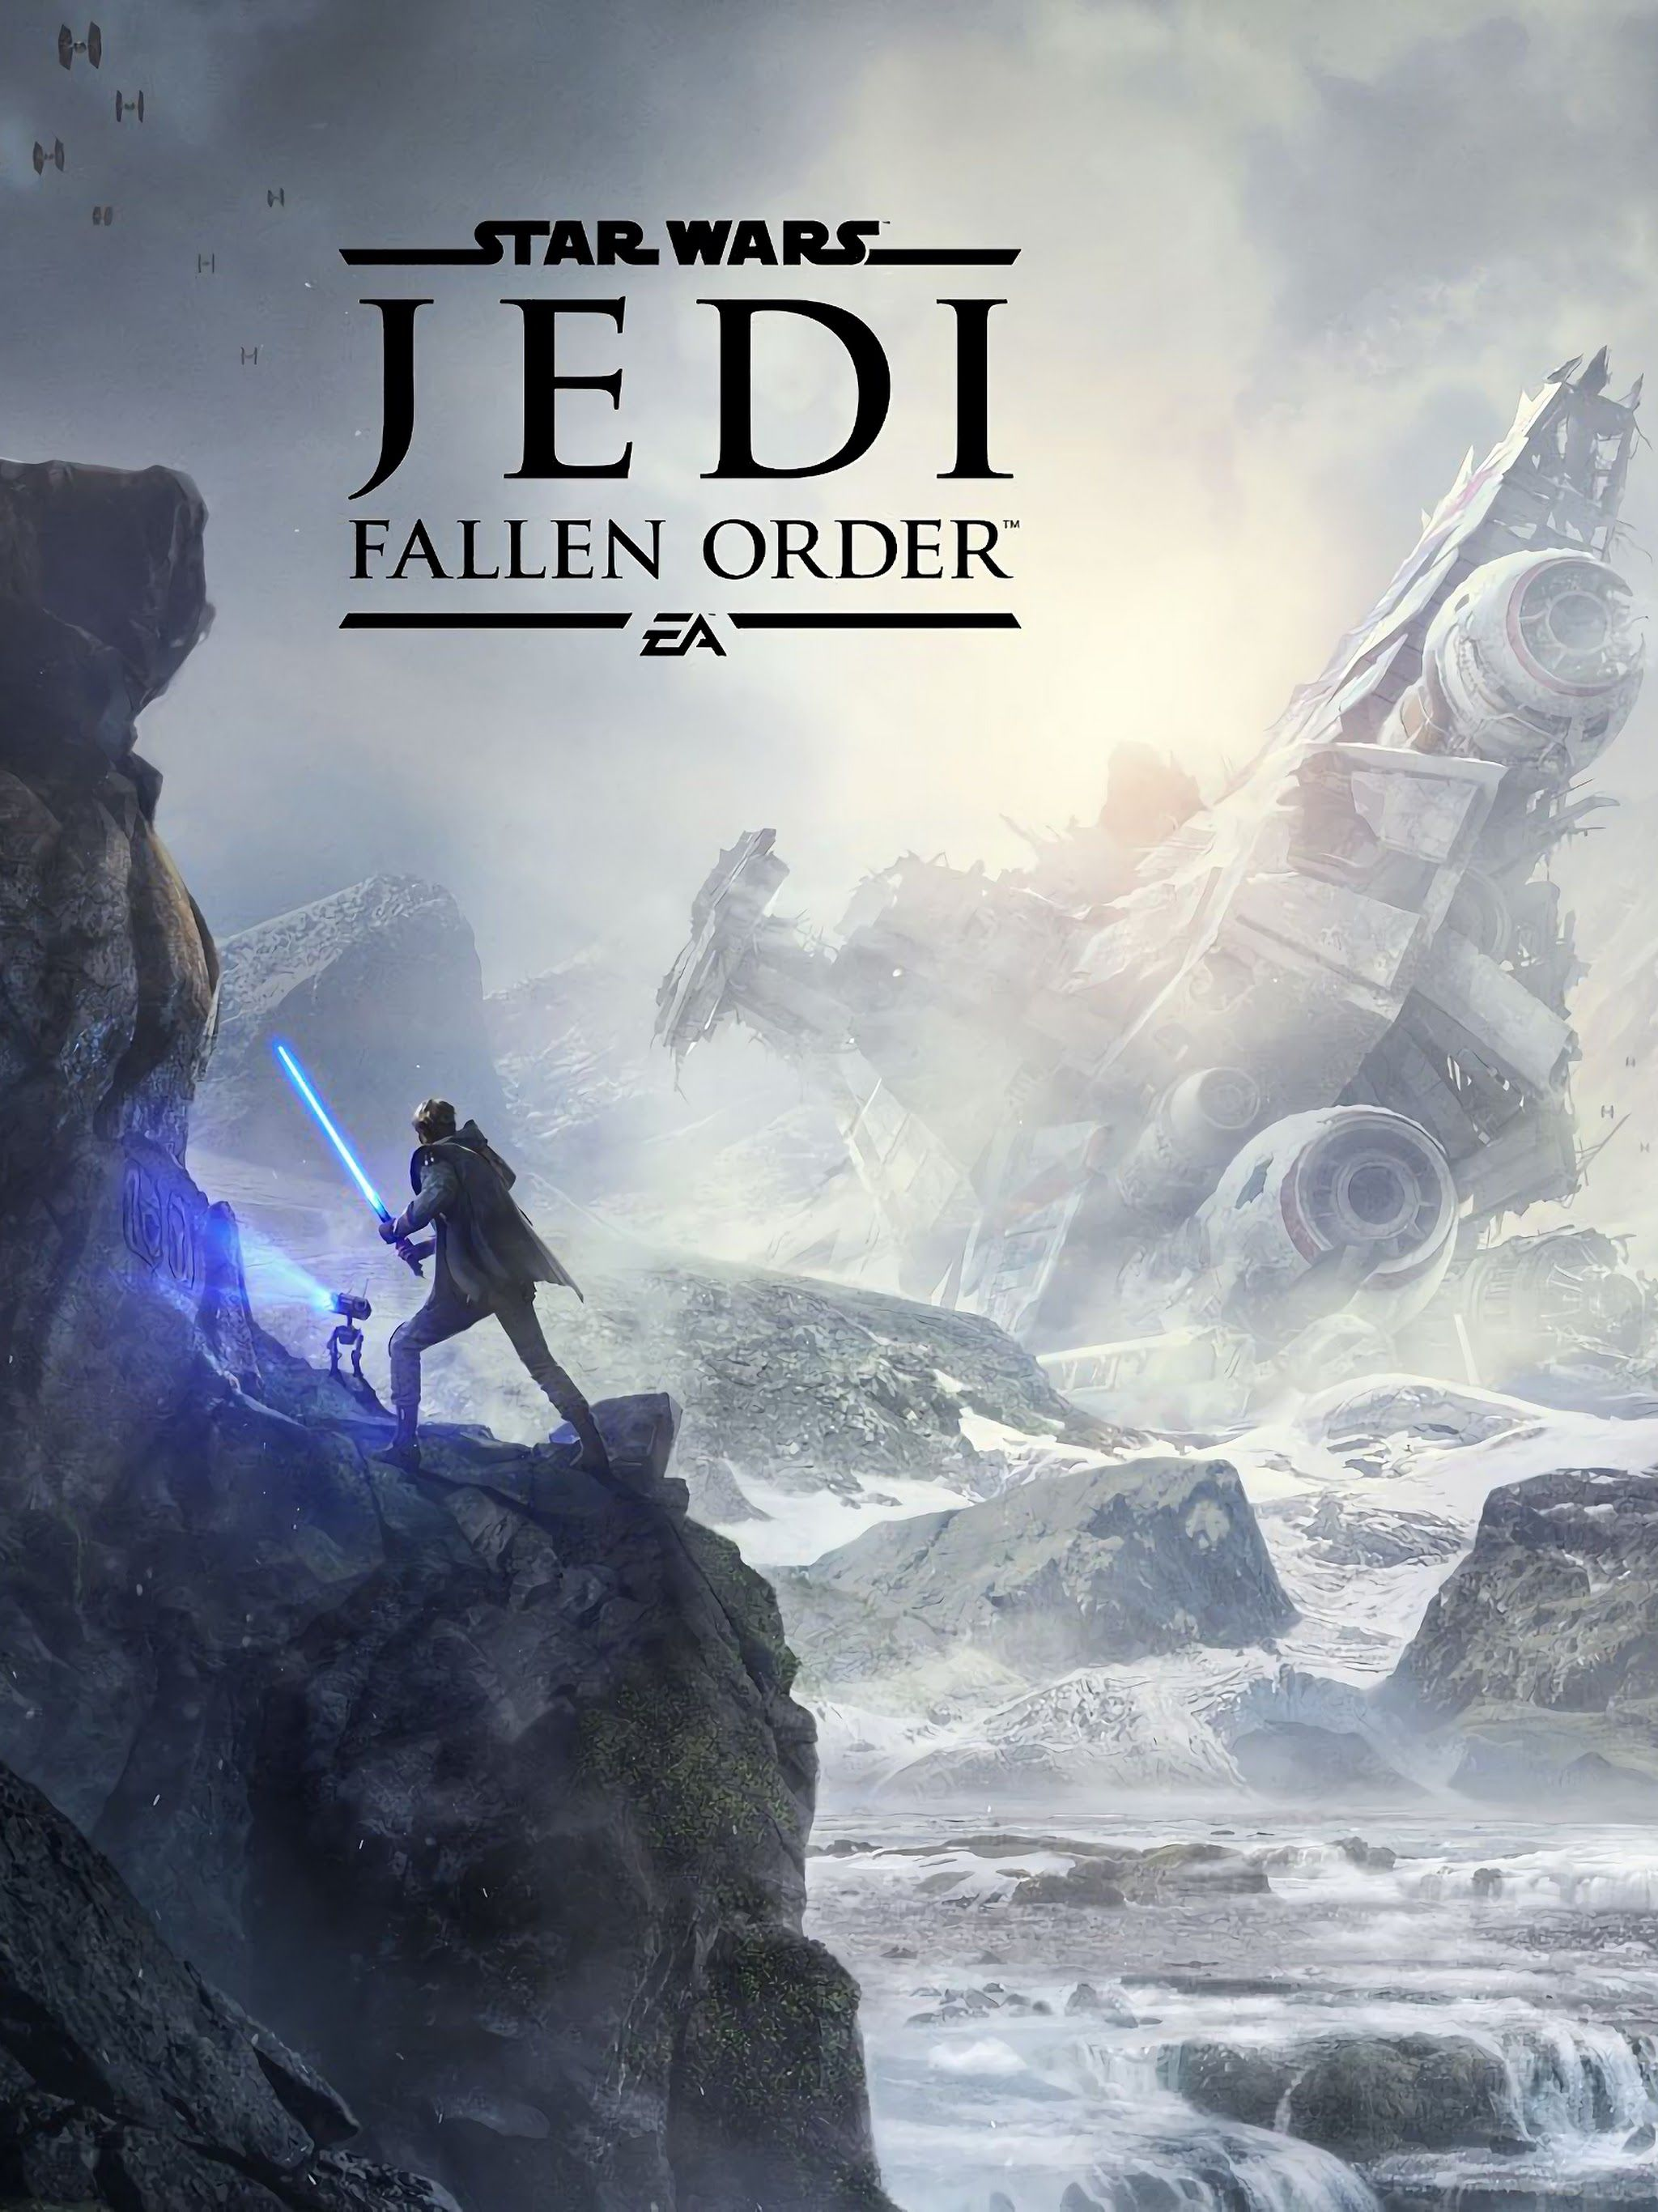 Star Wars Jedi Fallen Order Wallpapers Top Free Star Wars Jedi Fallen Order Backgrounds Wallpaperaccess